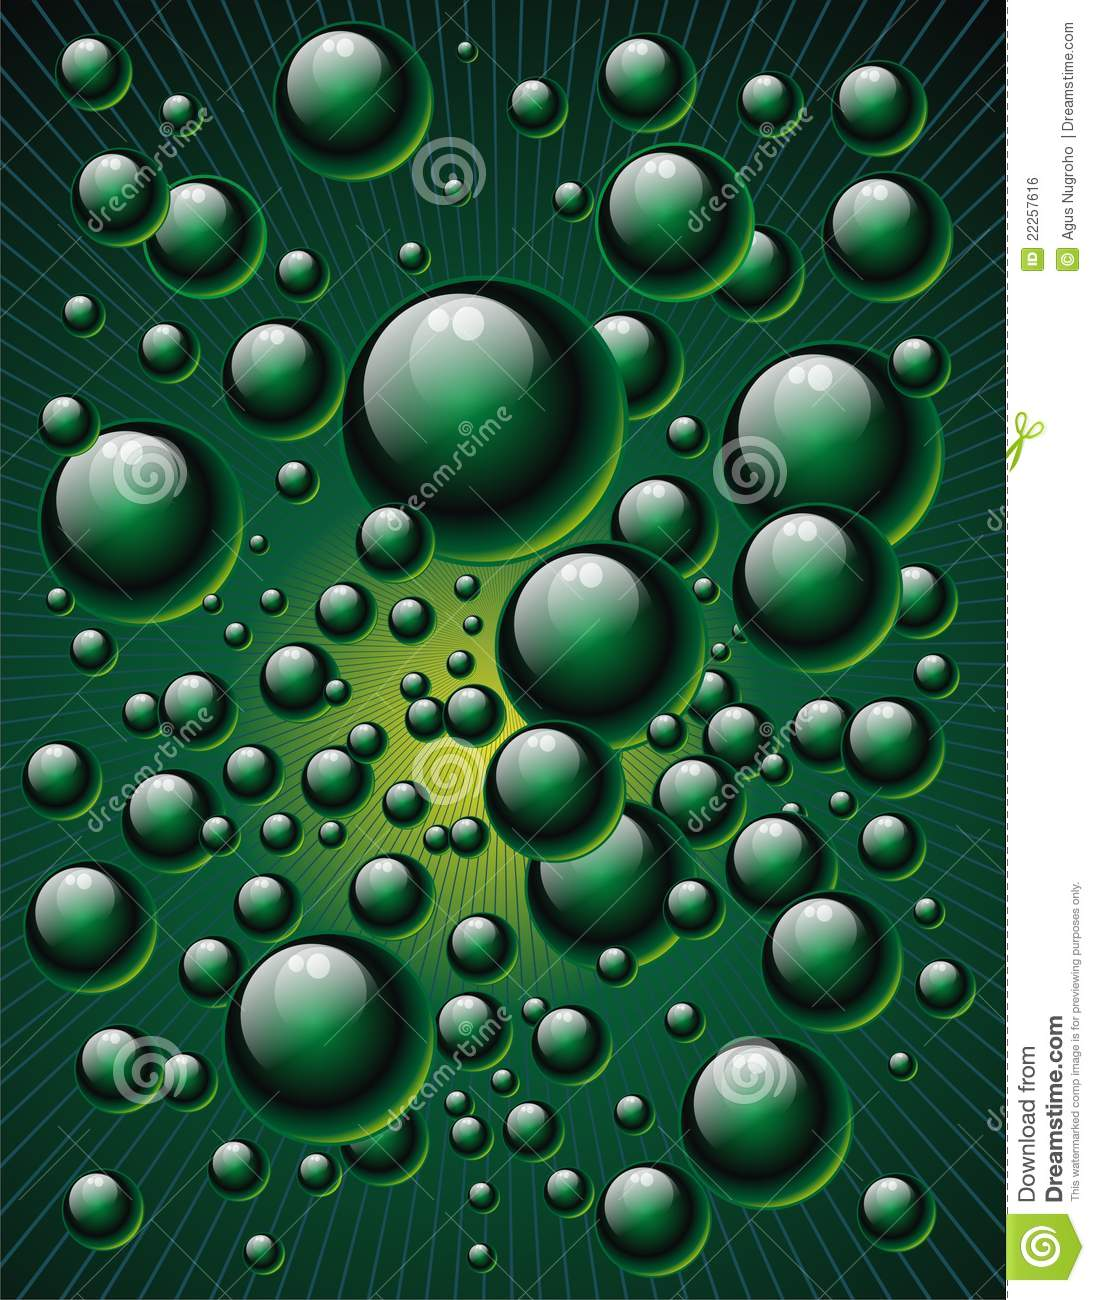 Green Bubbles Royalty Free Stock Image - Image: 22257616